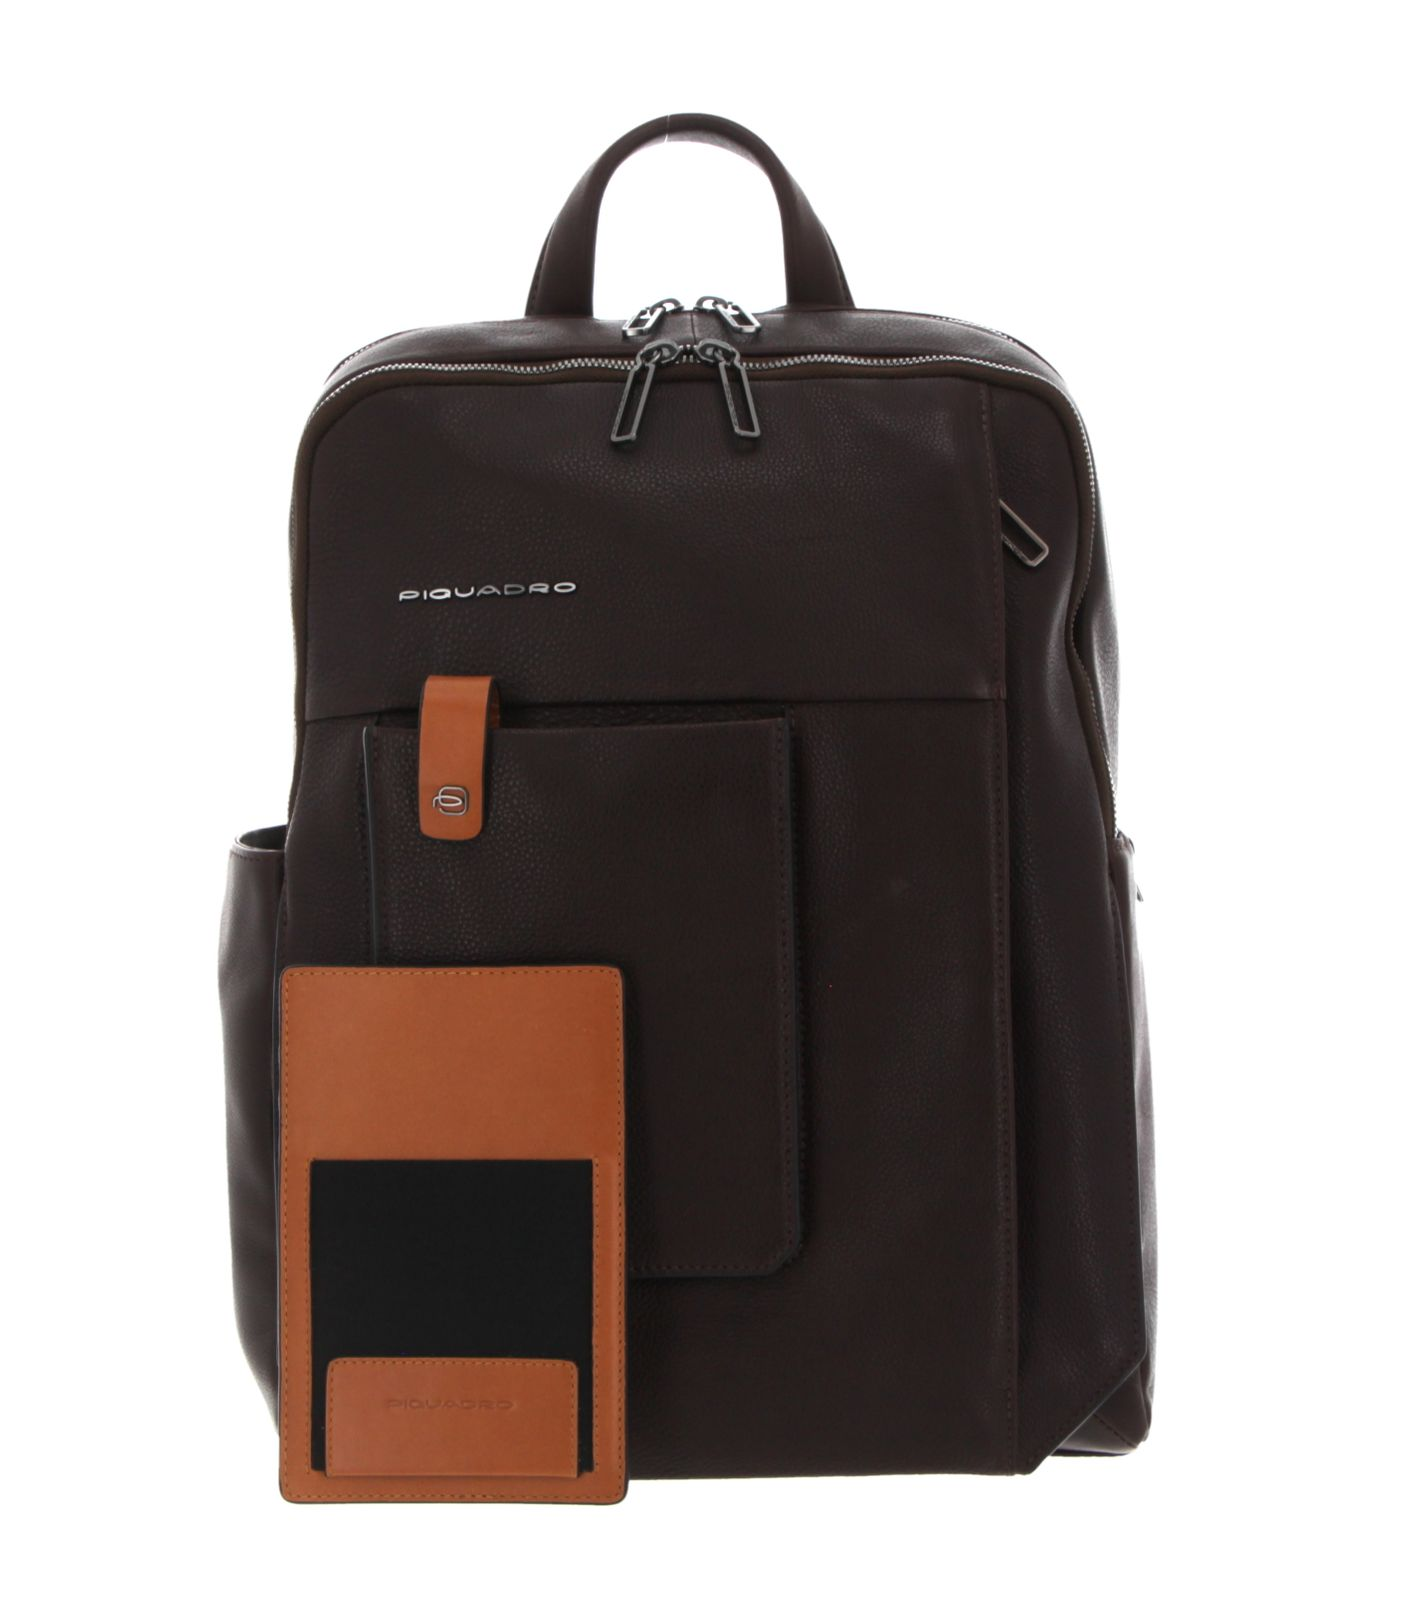 PIQUADRO Tallin Computer Backpack With Smartphone Case Marrone